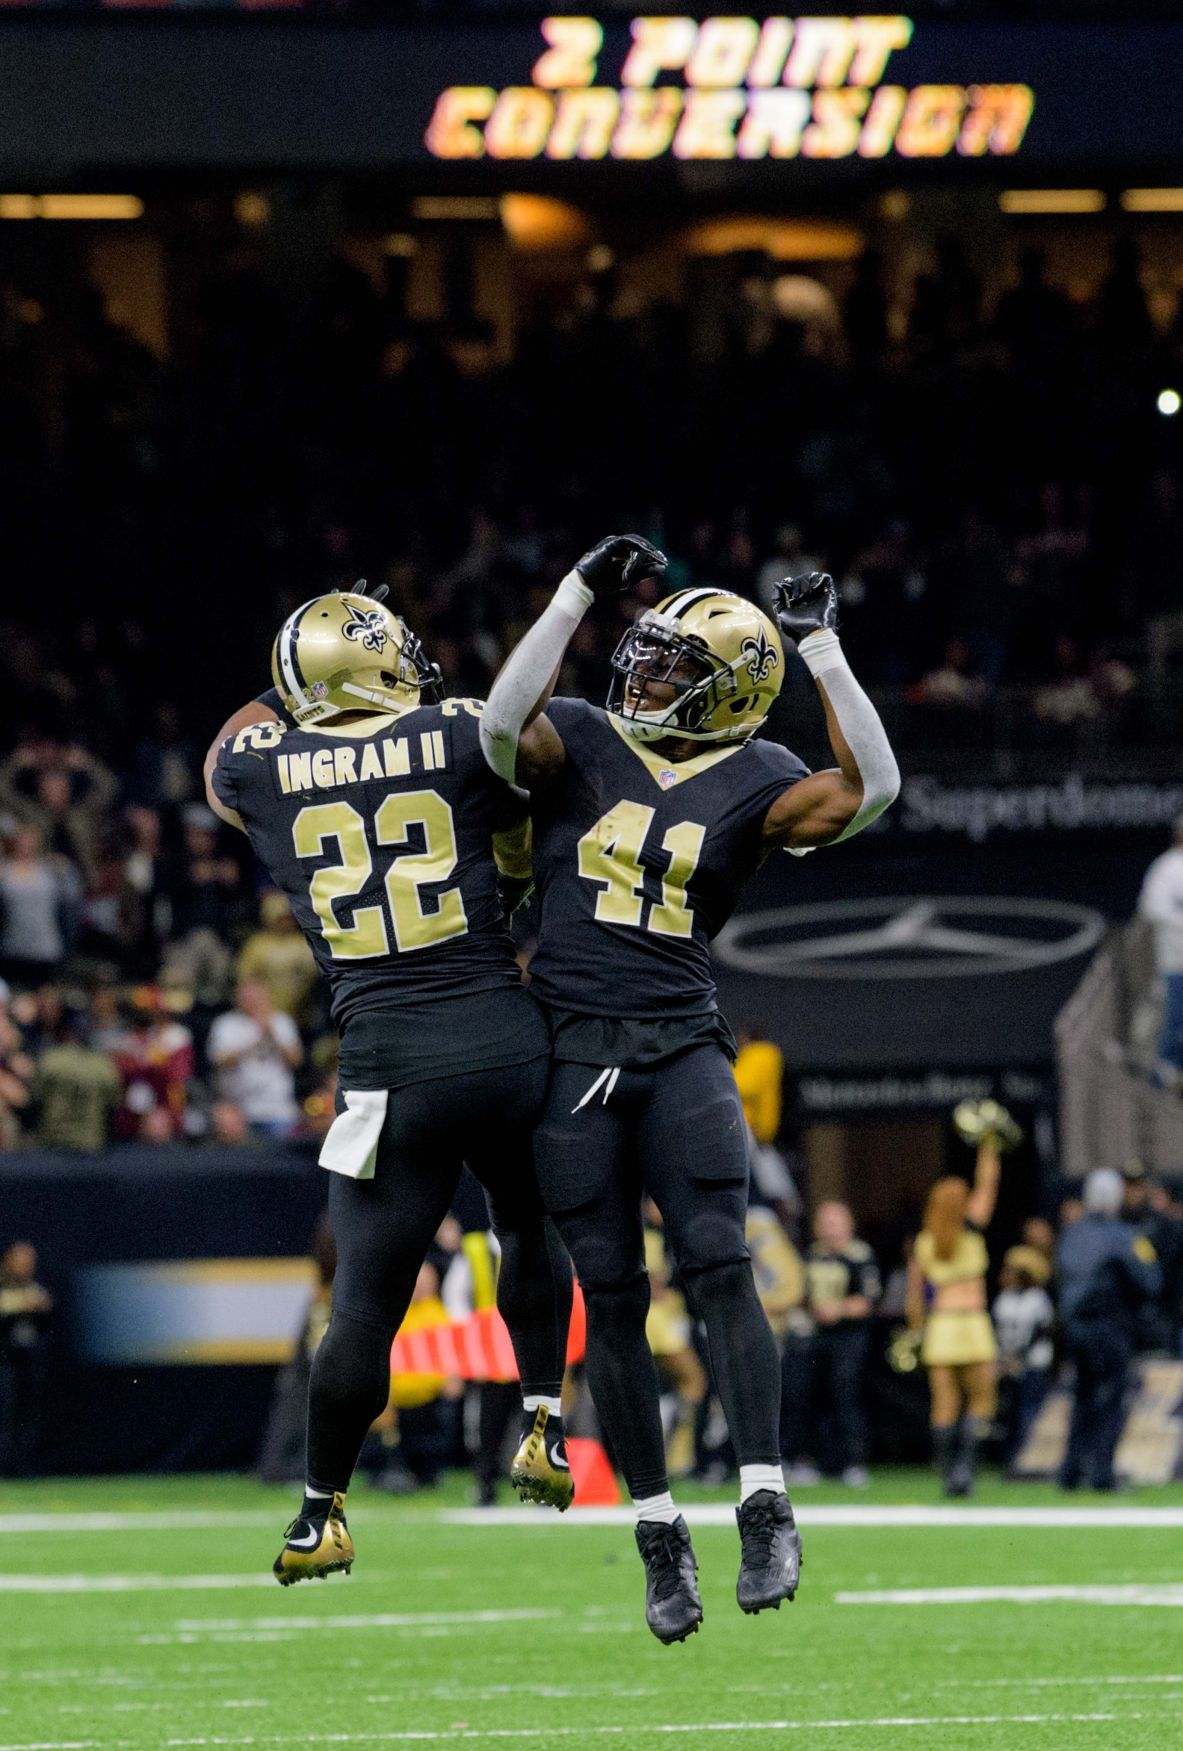 Saints vs Redskins recap See what New Orleans players coaches say about heart stopping 34 31 OT victory